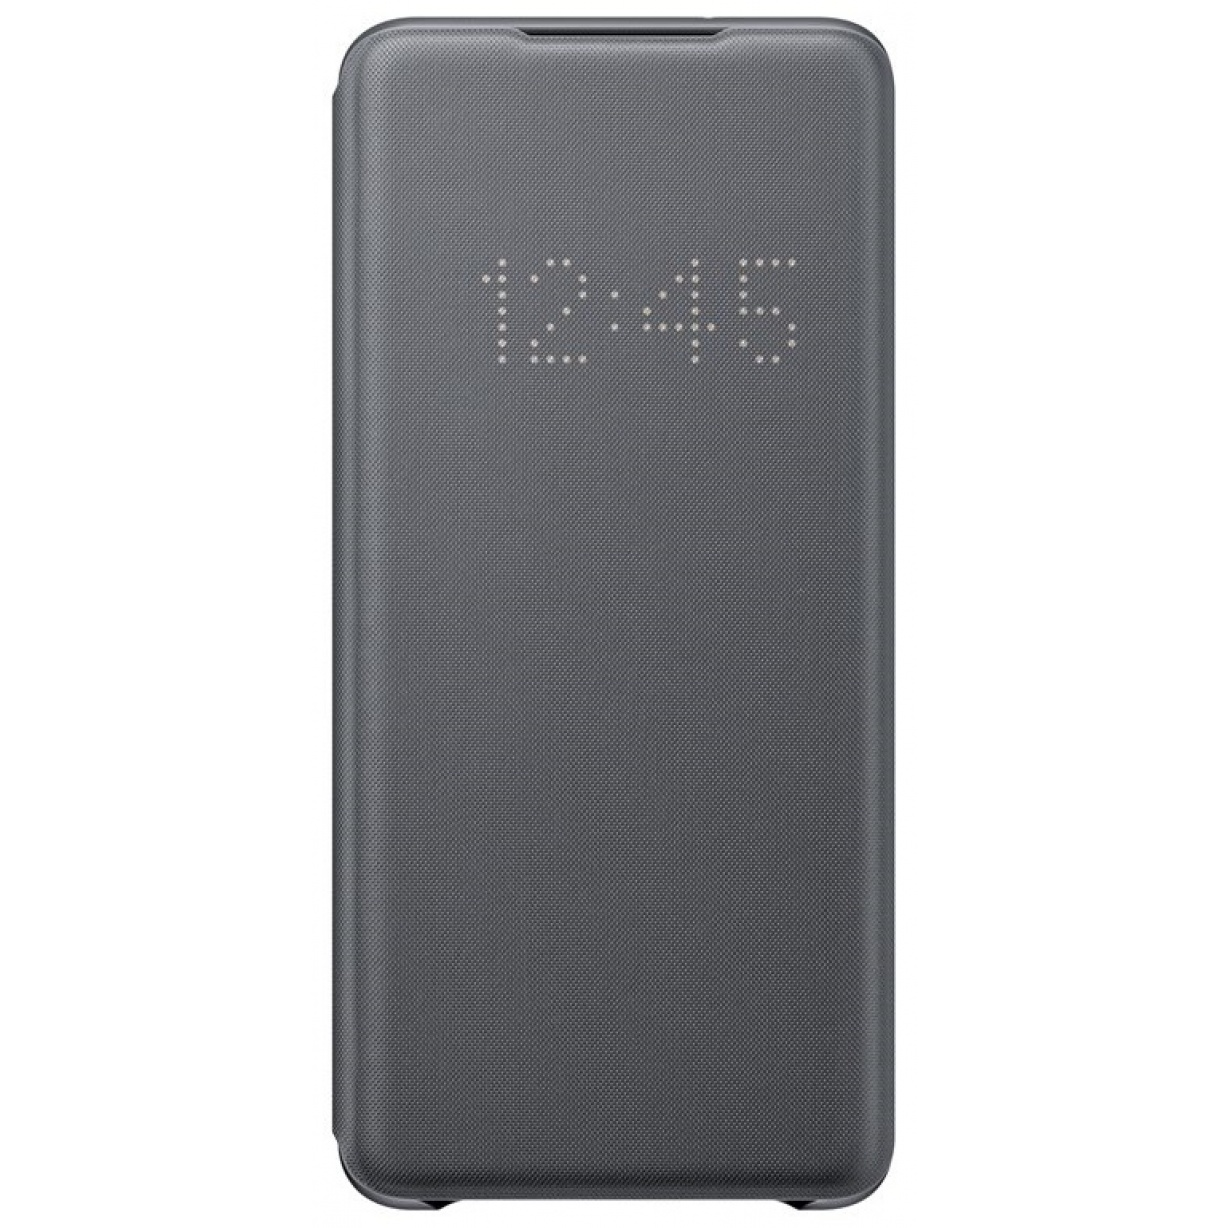 Dėklas G985 Samsung Galaxy S20+ LED View Cover Grey